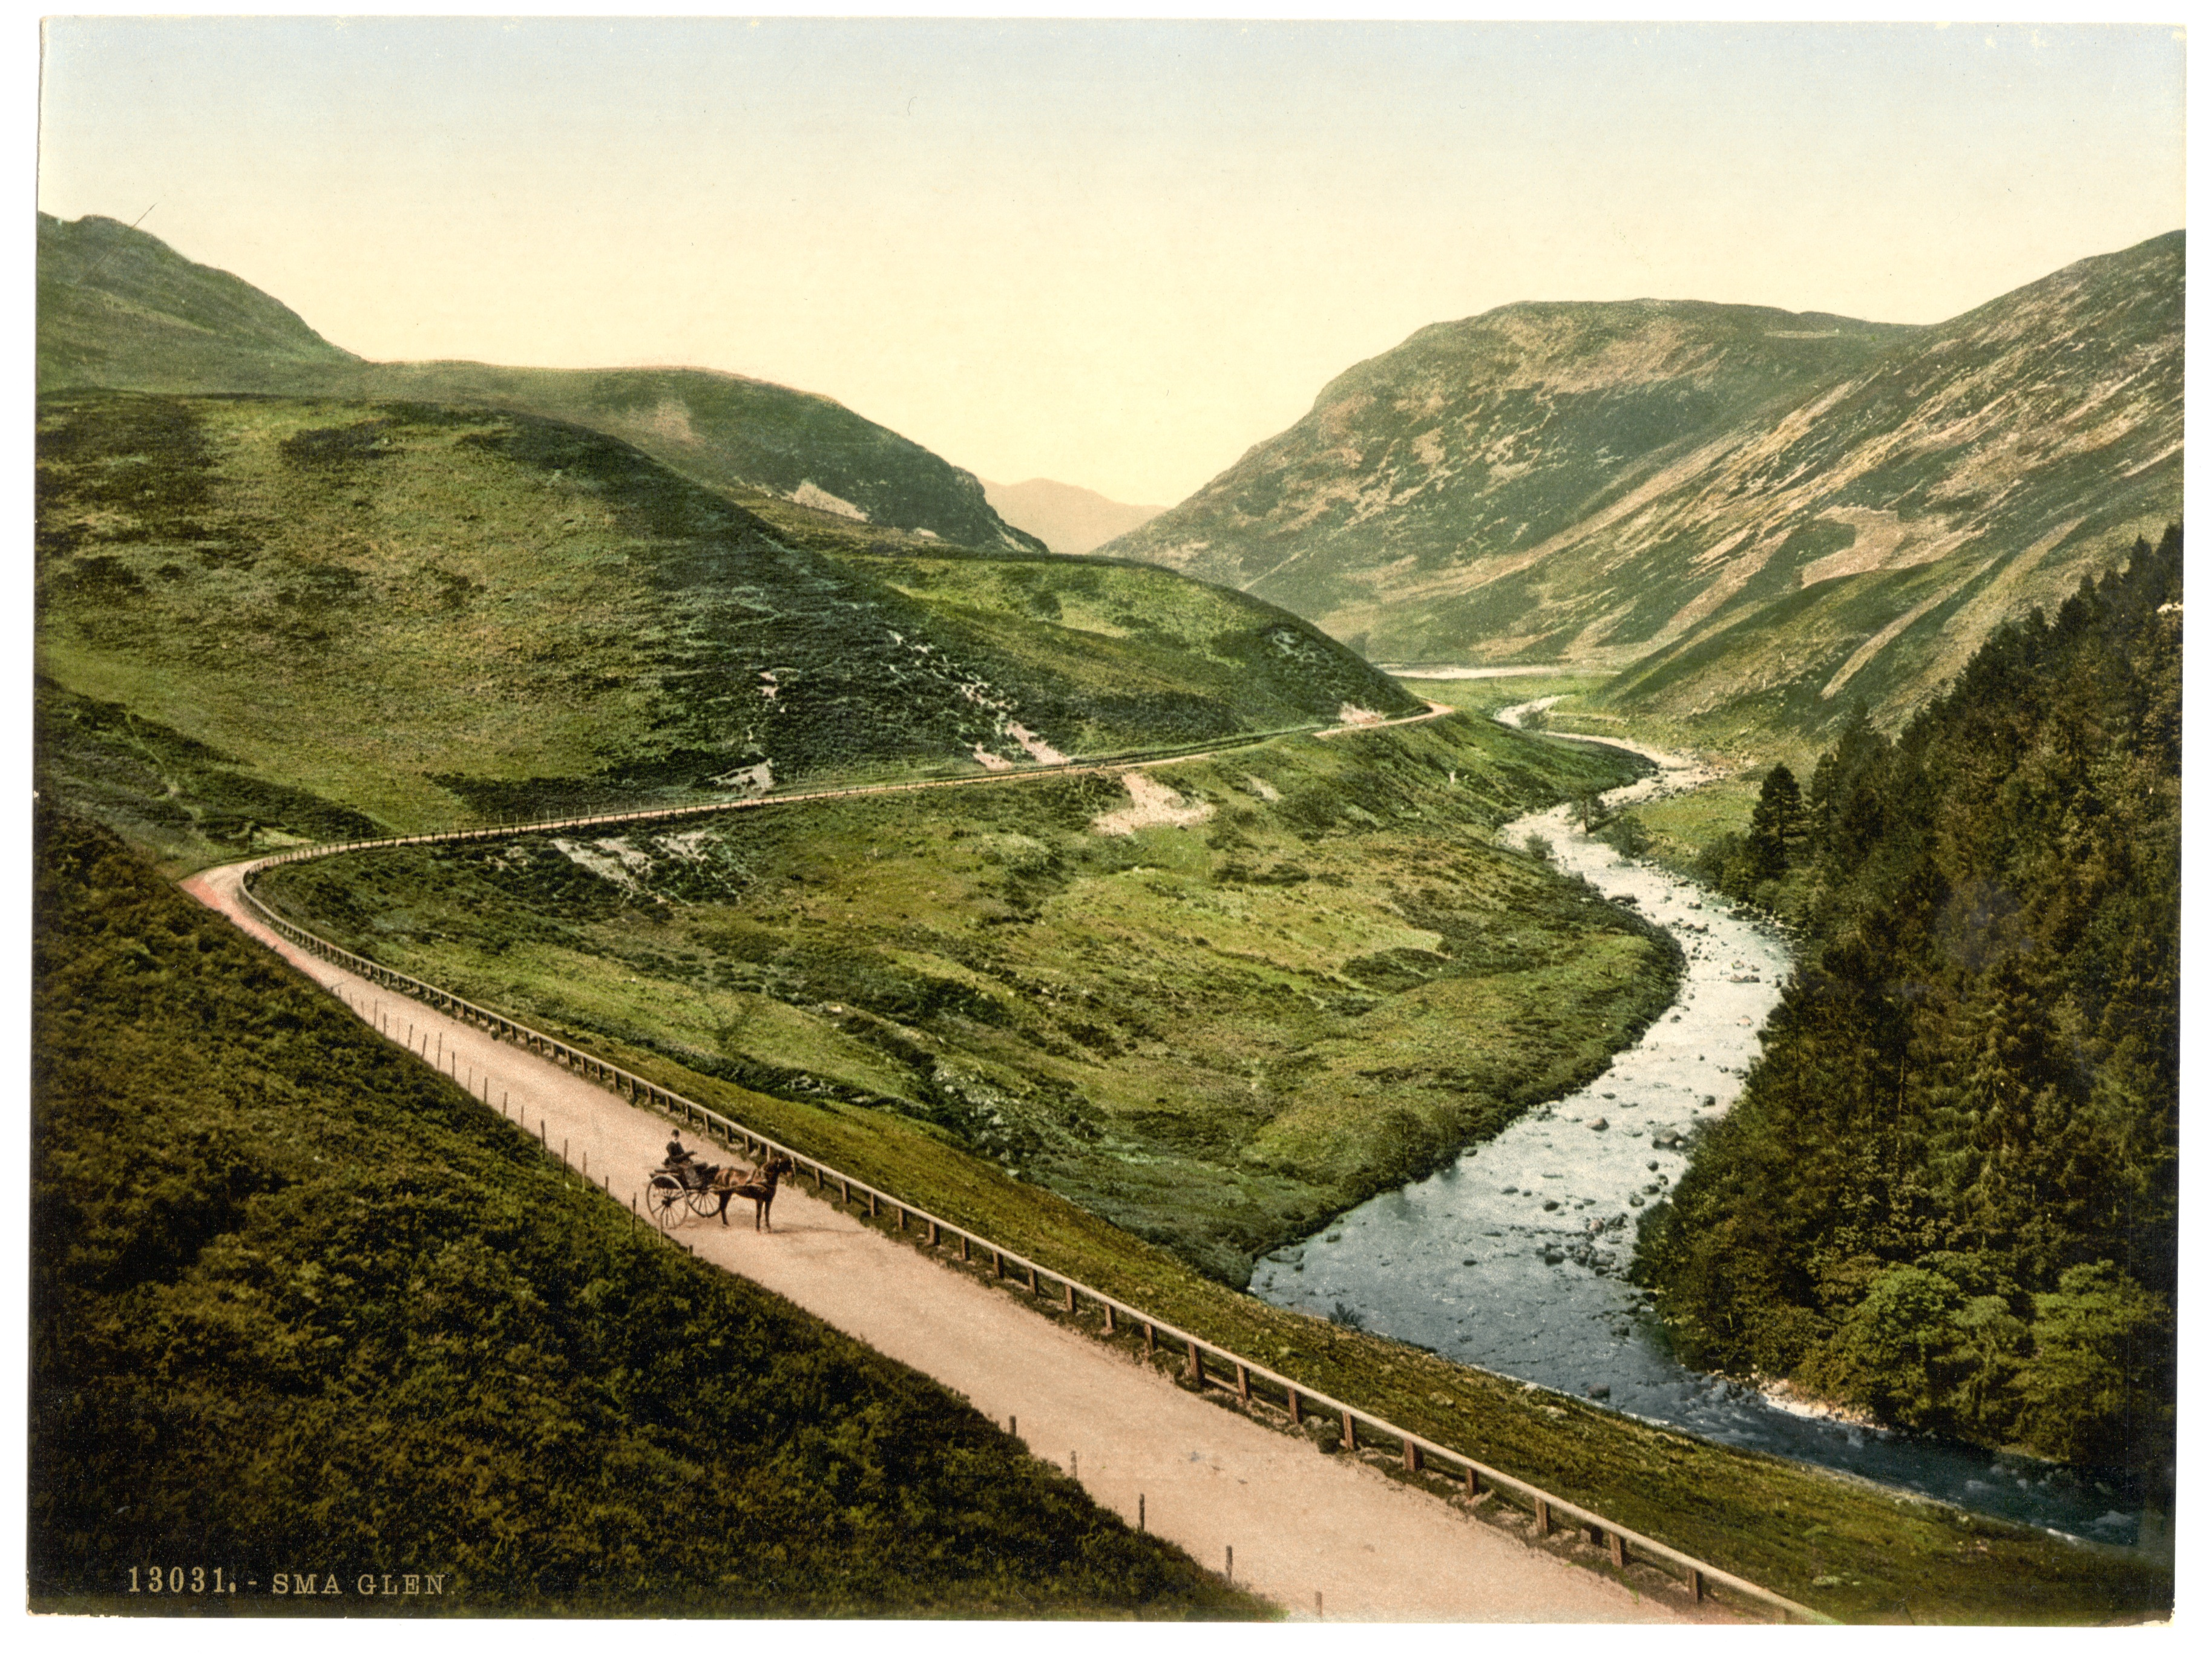 File:General_view,_Sma_Glen_(i.e.,_Sma'),_Scotland LCCN2002695052 on Color By Number